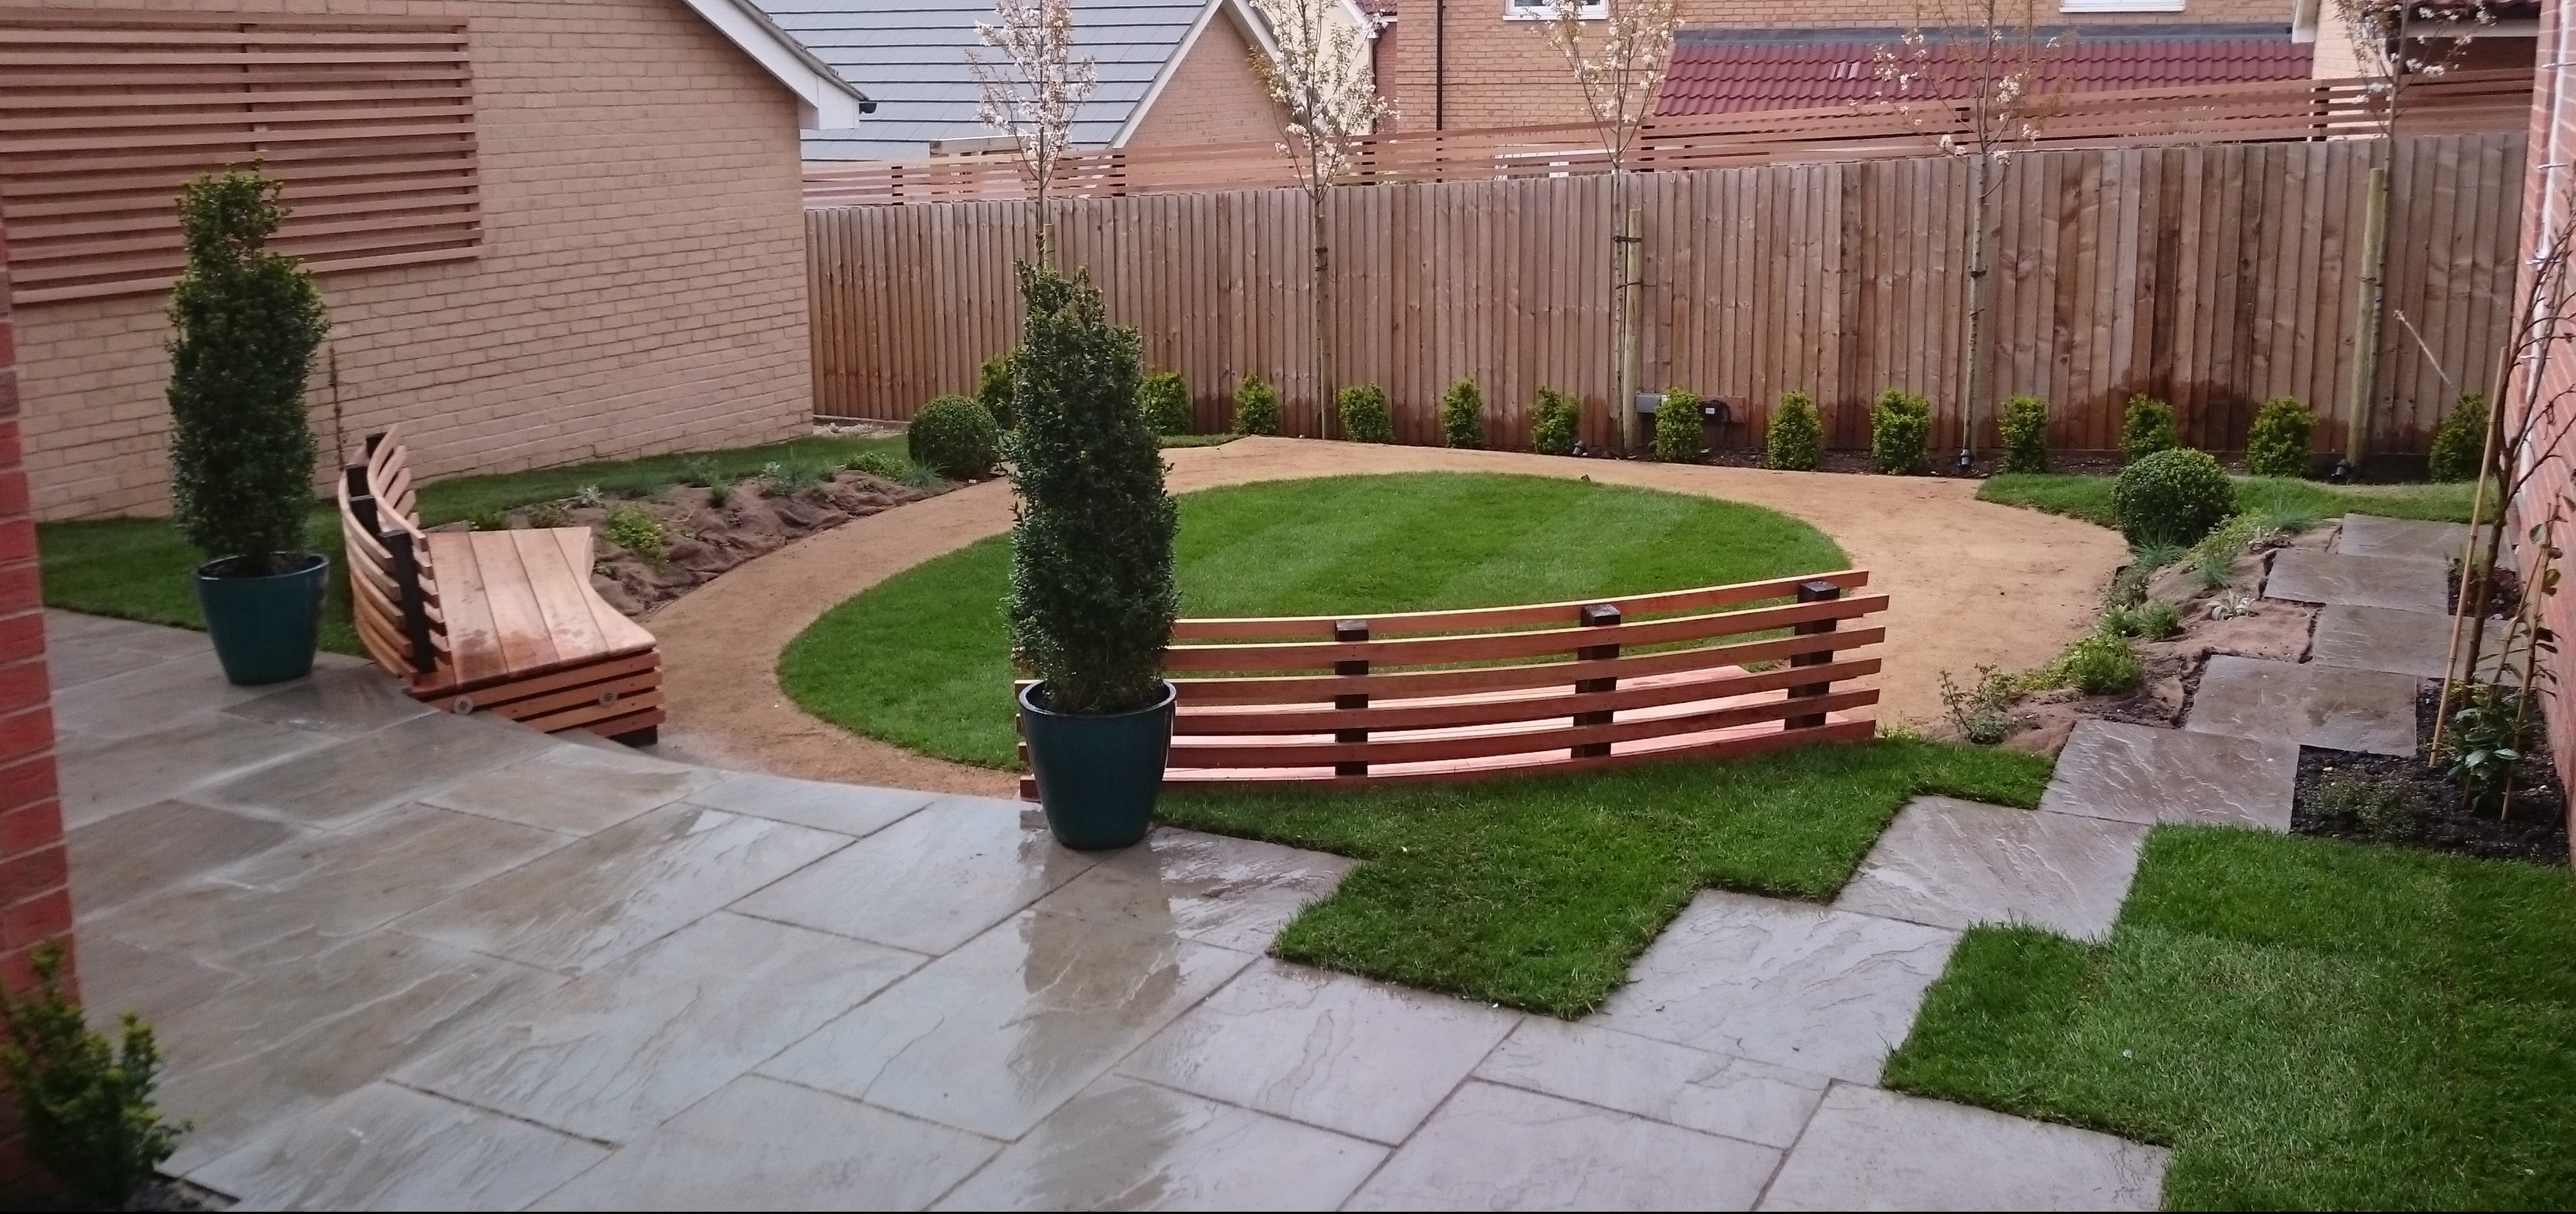 Terraced garden hortiservices for Terrace garden images